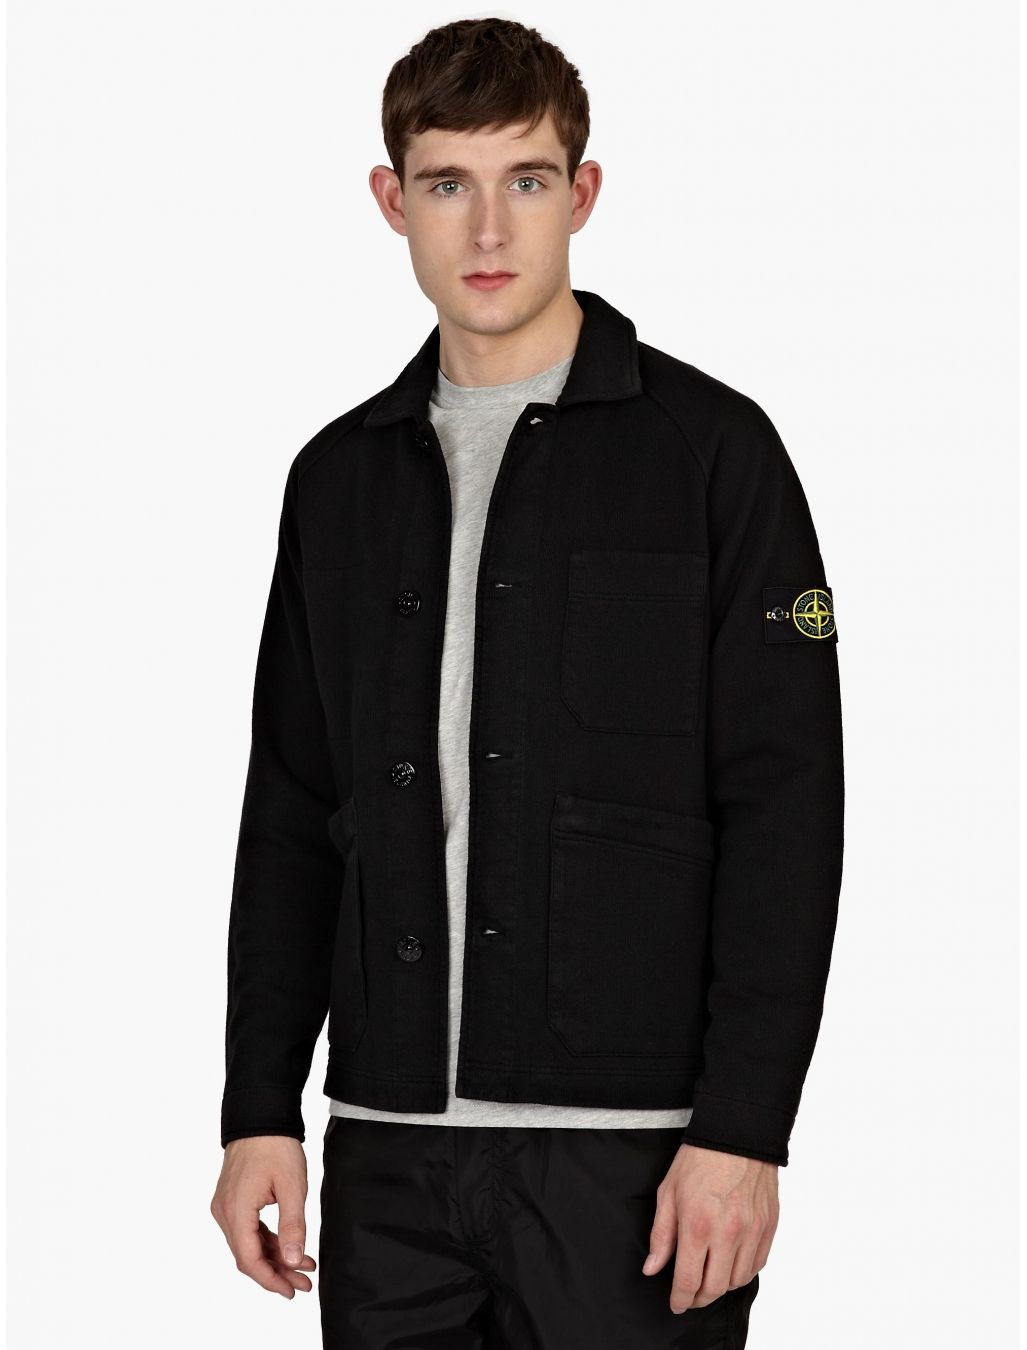 9f0b68c7 Stone Island Black Heavy Cotton Work Jacket | oki-ni | Stone Island ...